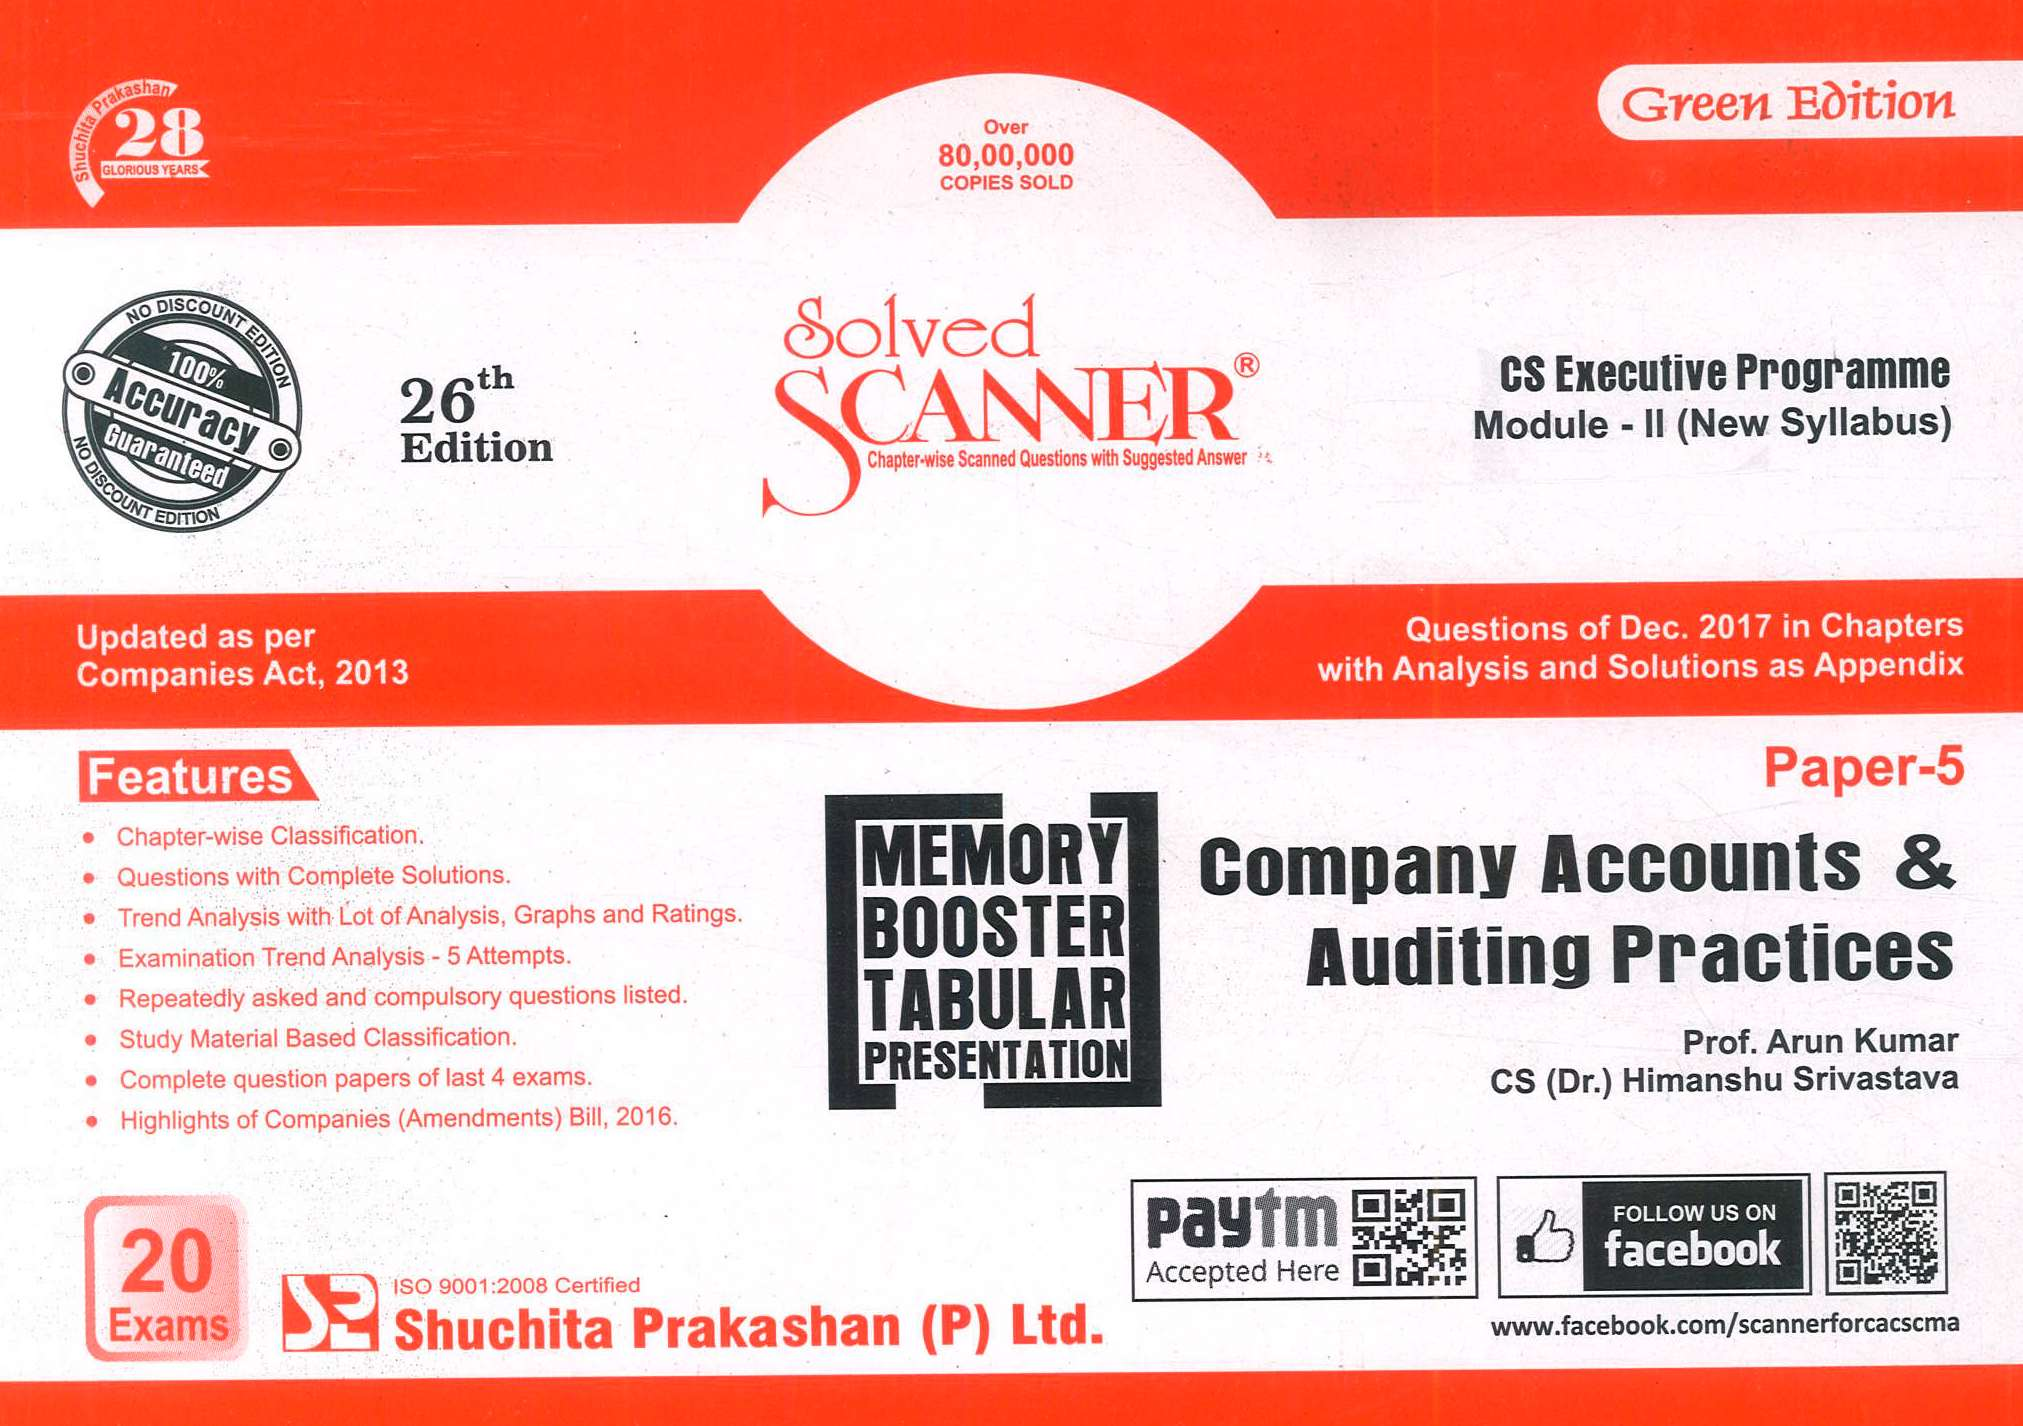 Shuchita Solved Scanner Company Account and Auditing Practices for CS Executive Programme Paper -5 Module -II (New Syllabus) for June 2018 Exam by Prof. Arun Kumar and CS (Dr.) Himanshu Srivastava (Shuchita Prakashan) Edition 26th 2017